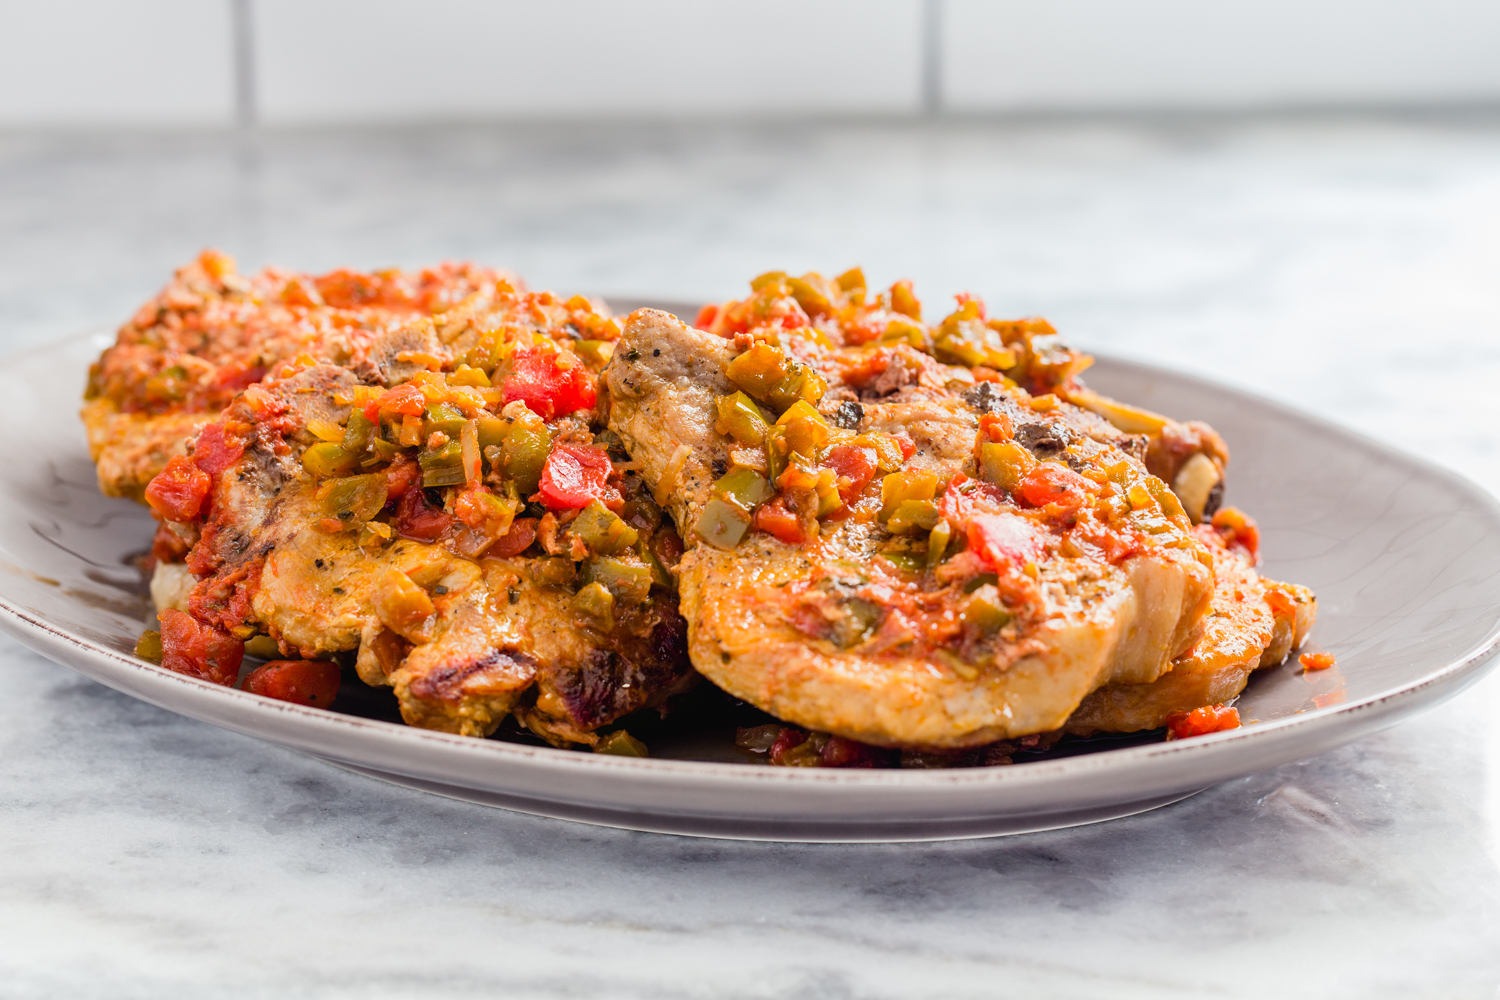 platter of pork chops with salsa on marble counter